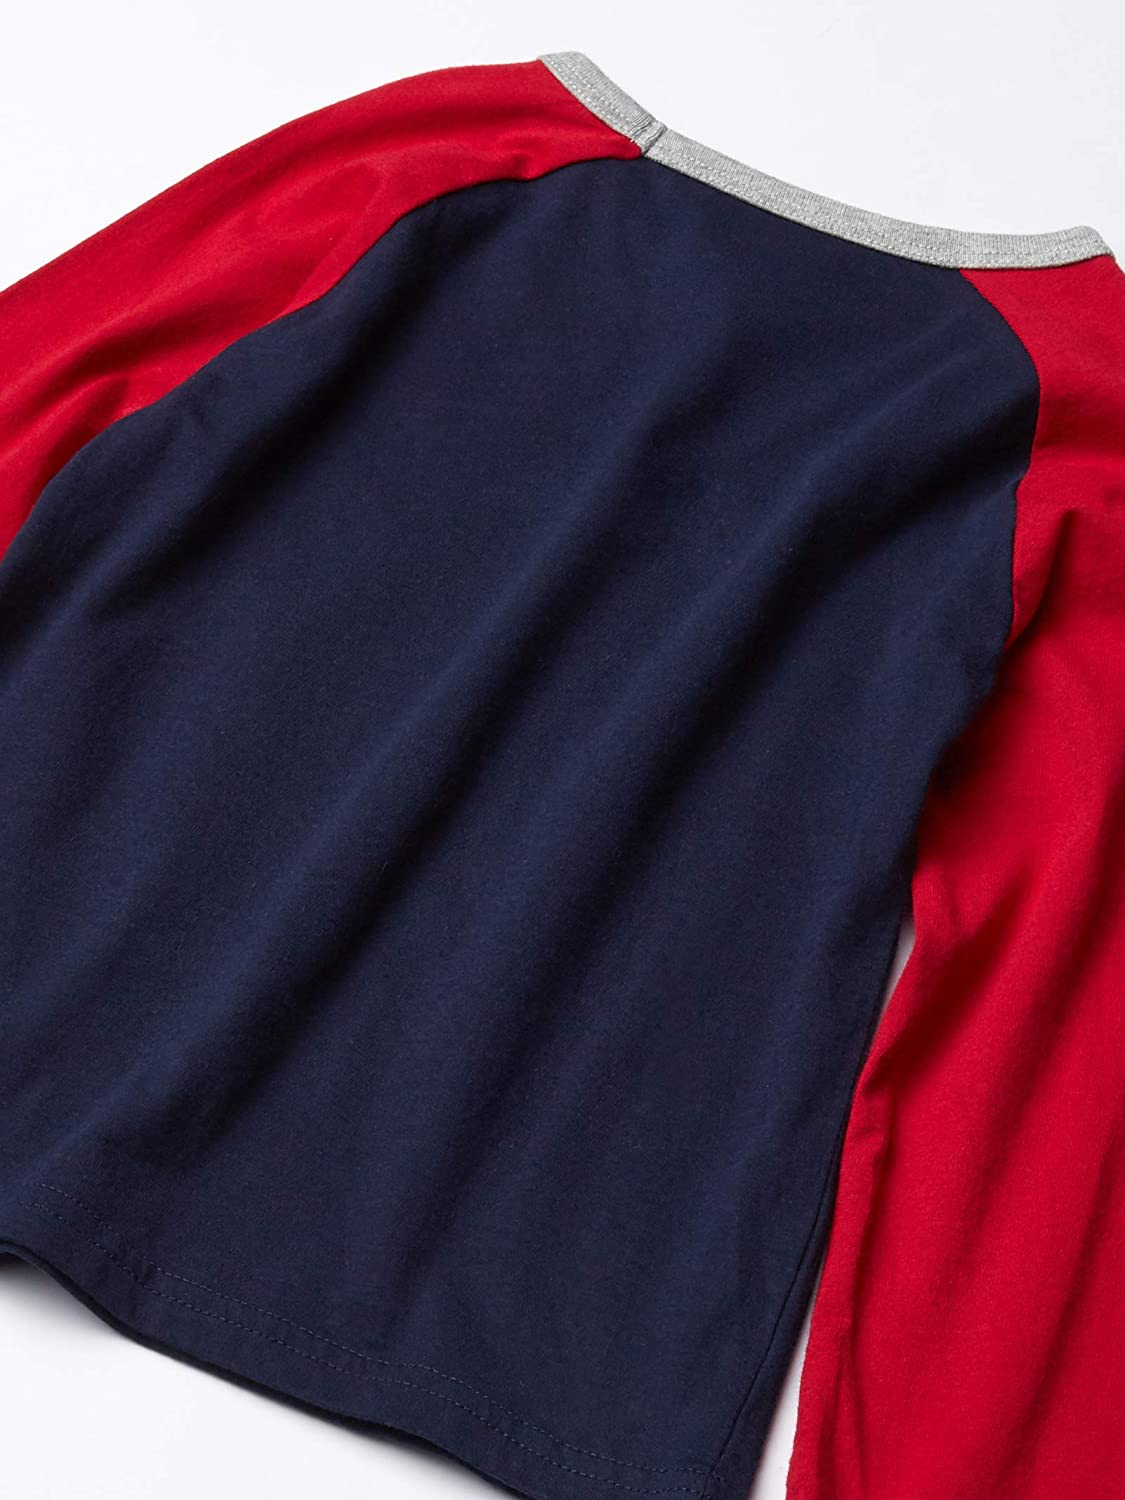 The Children's Place Baby And Toddler Boys' Graphic Raglan Top 2-Pack